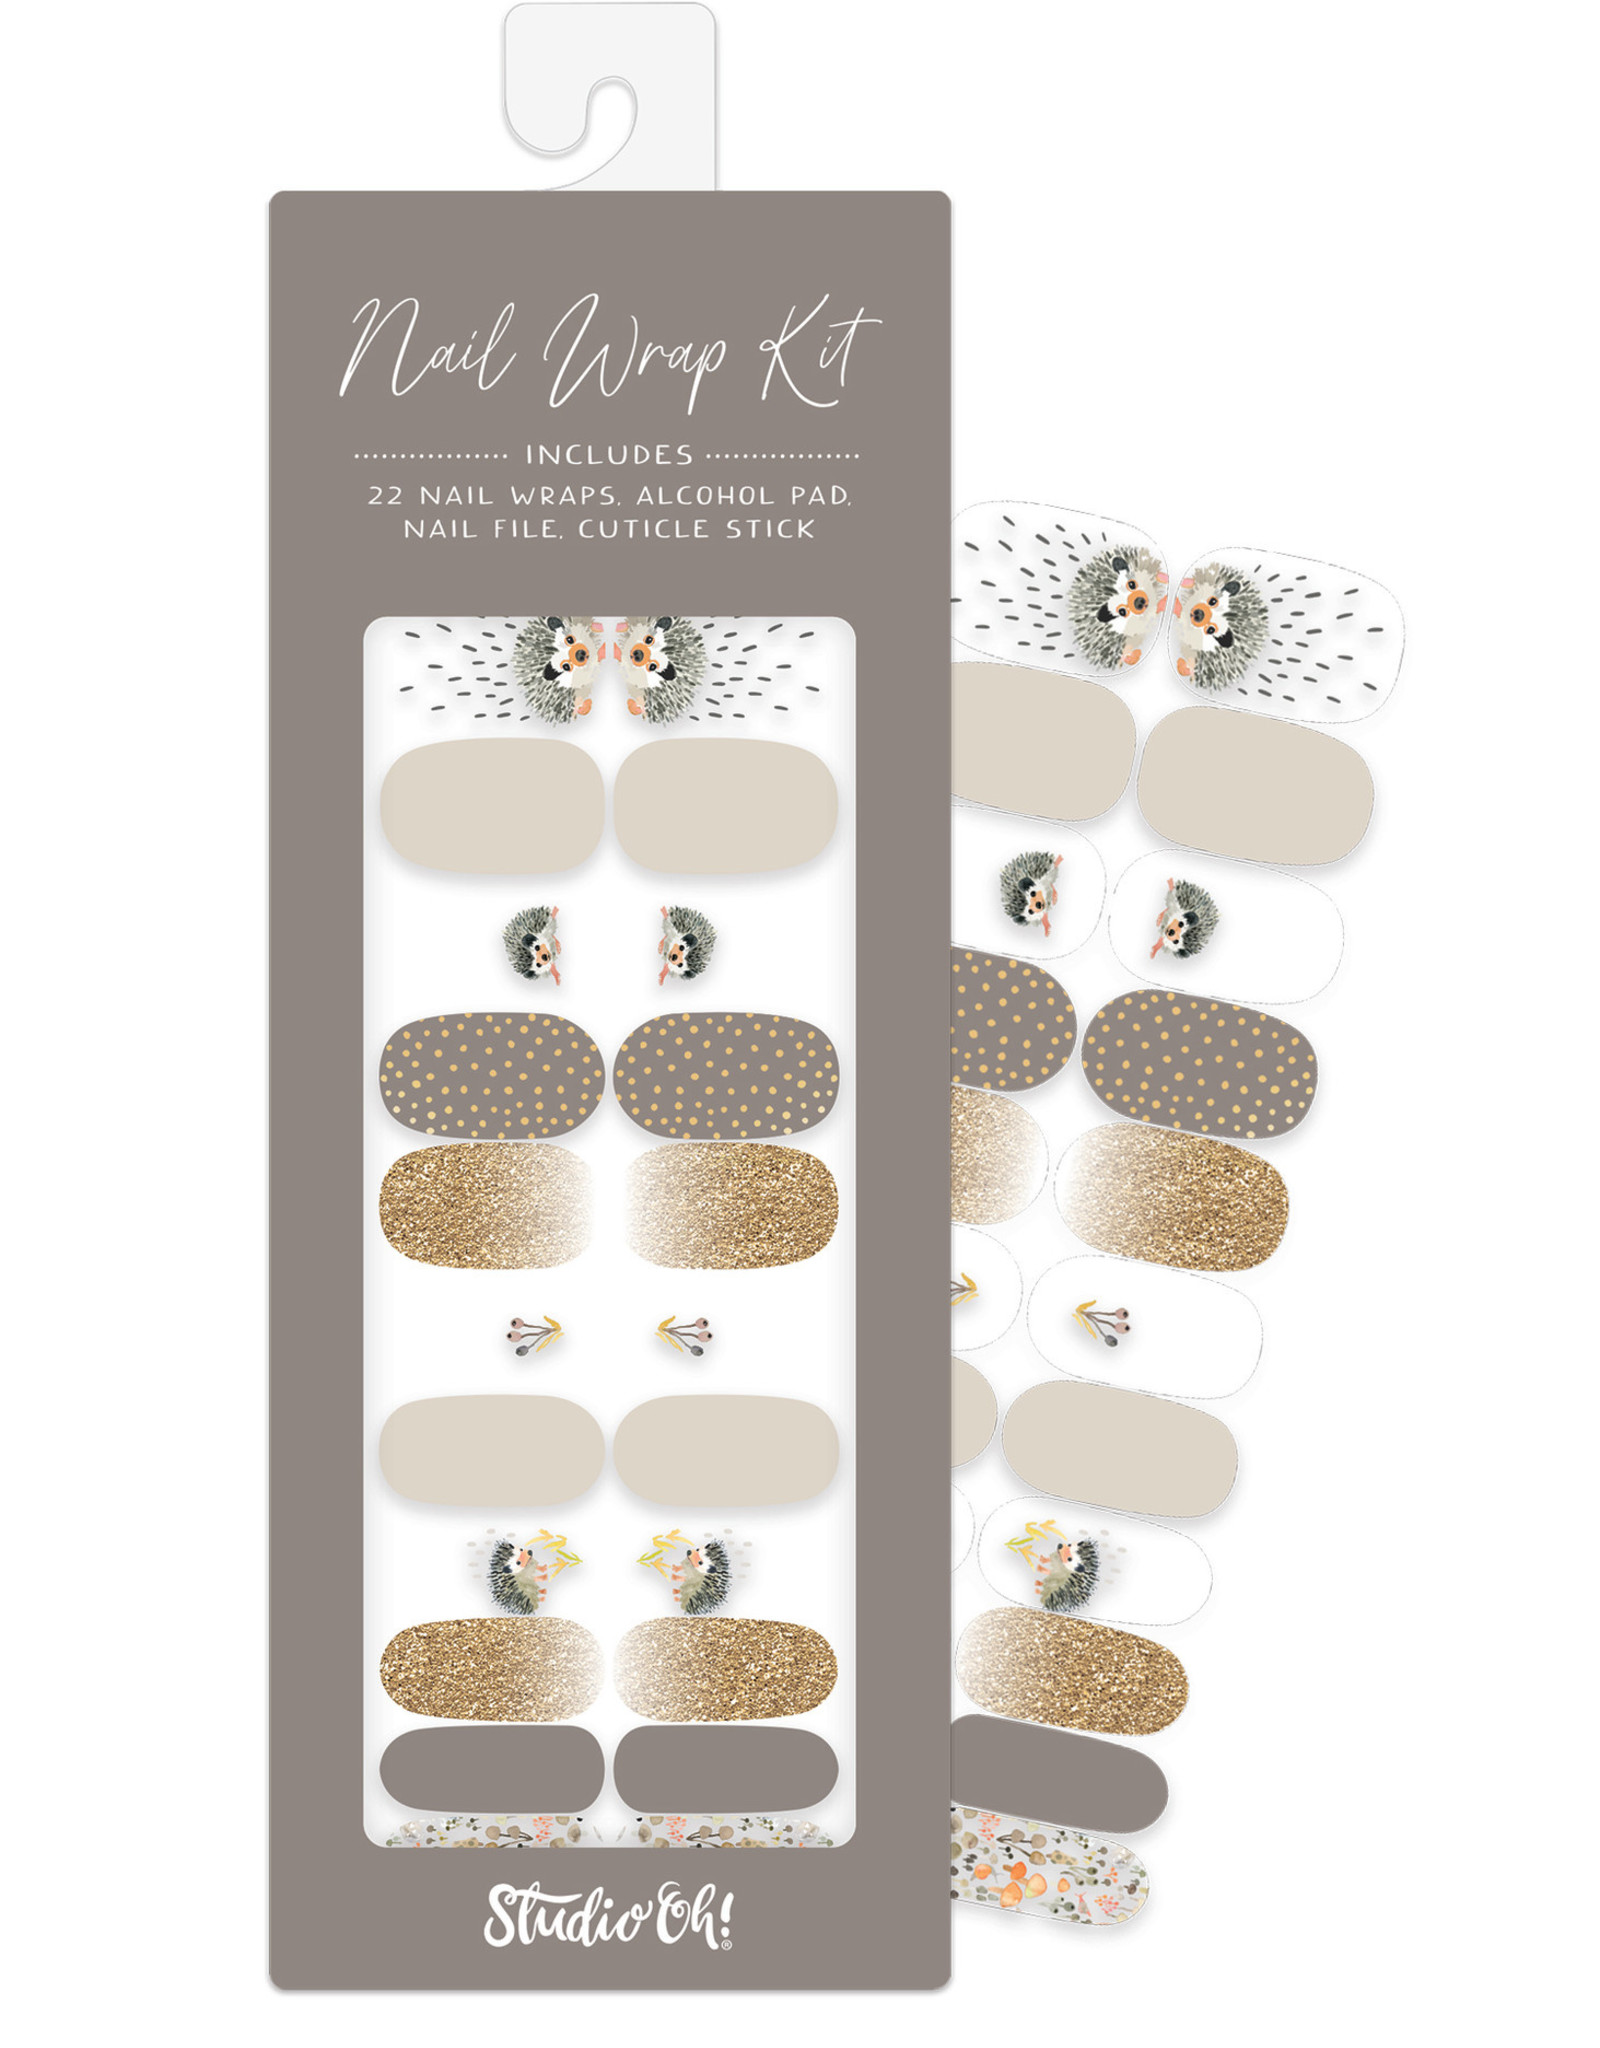 Studio Oh! Studio Oh! Nail Wrap Kit, Hedgehogs